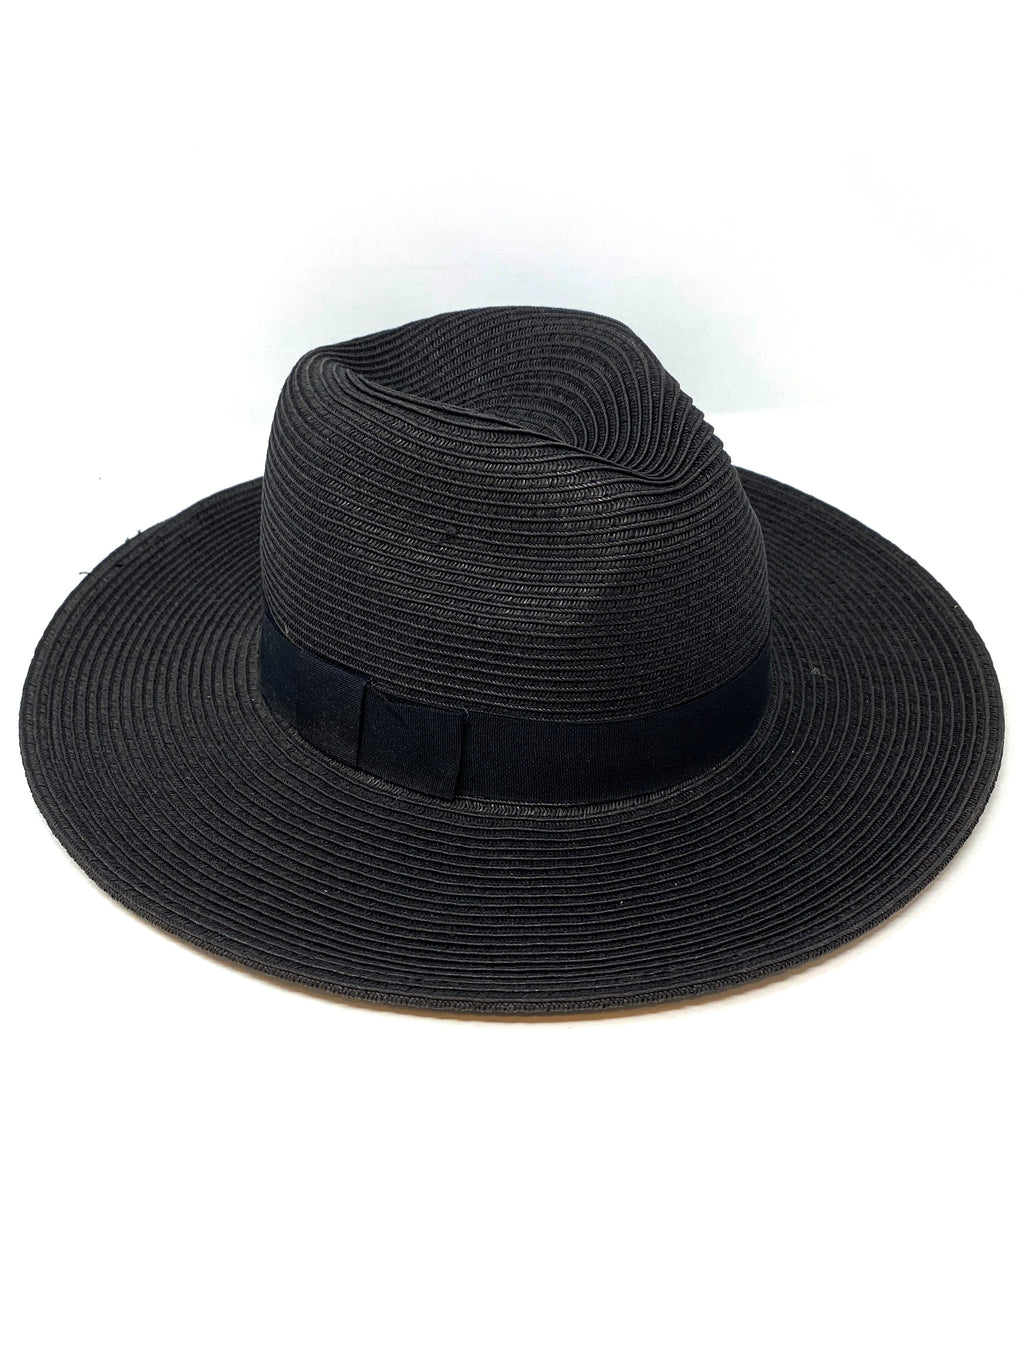 Lexi Foldable and Packable Panama Hat in Black